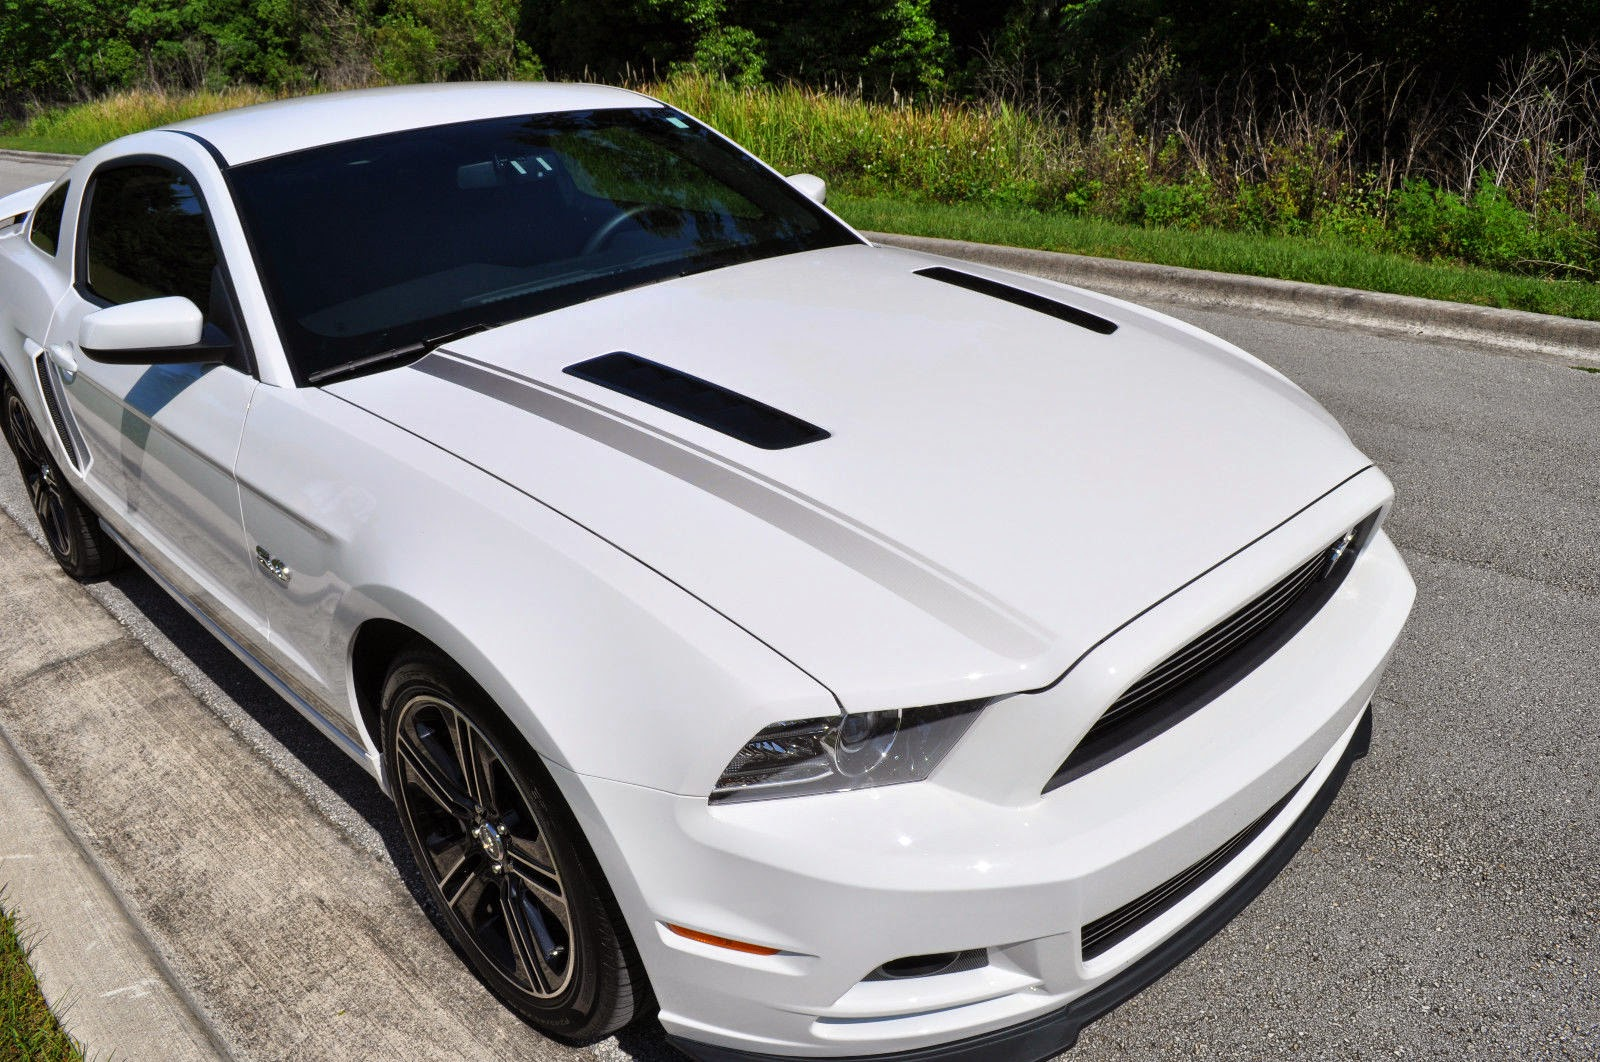 mustang gt california special automatic cars american hood ford muscle stripes side mint navigation performance 2040 rims forsale